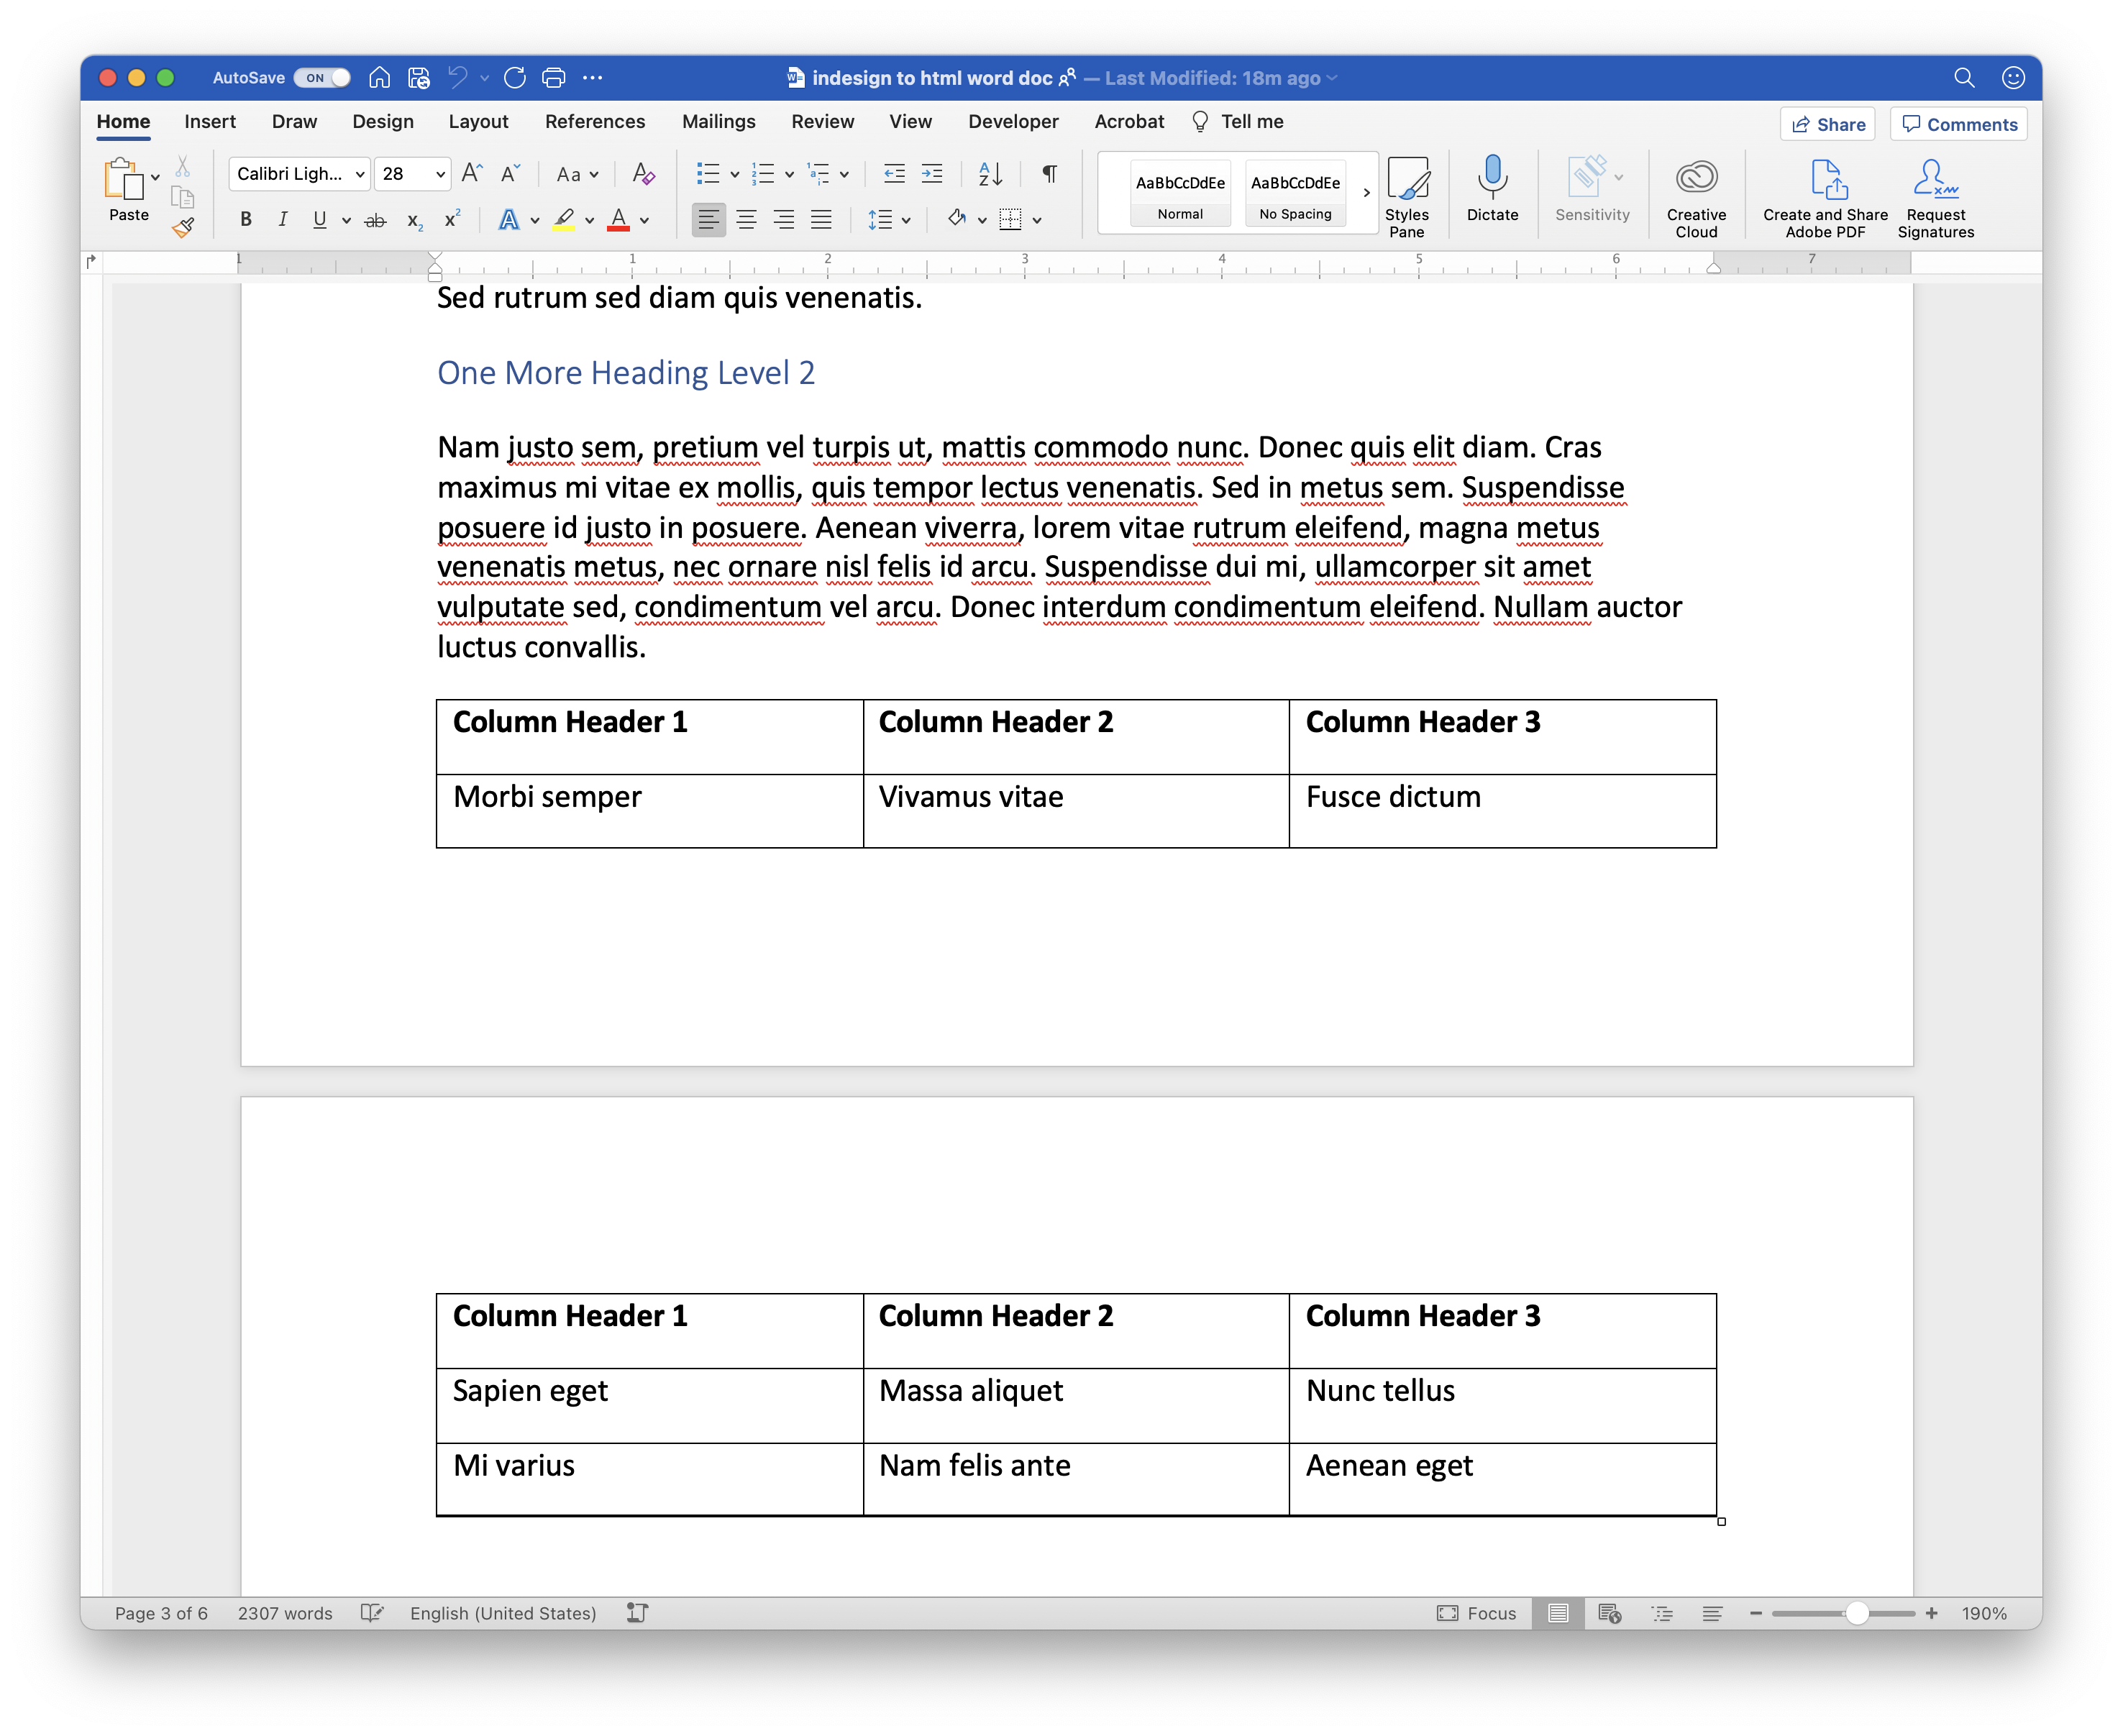 Added a simple table to the source Word document.